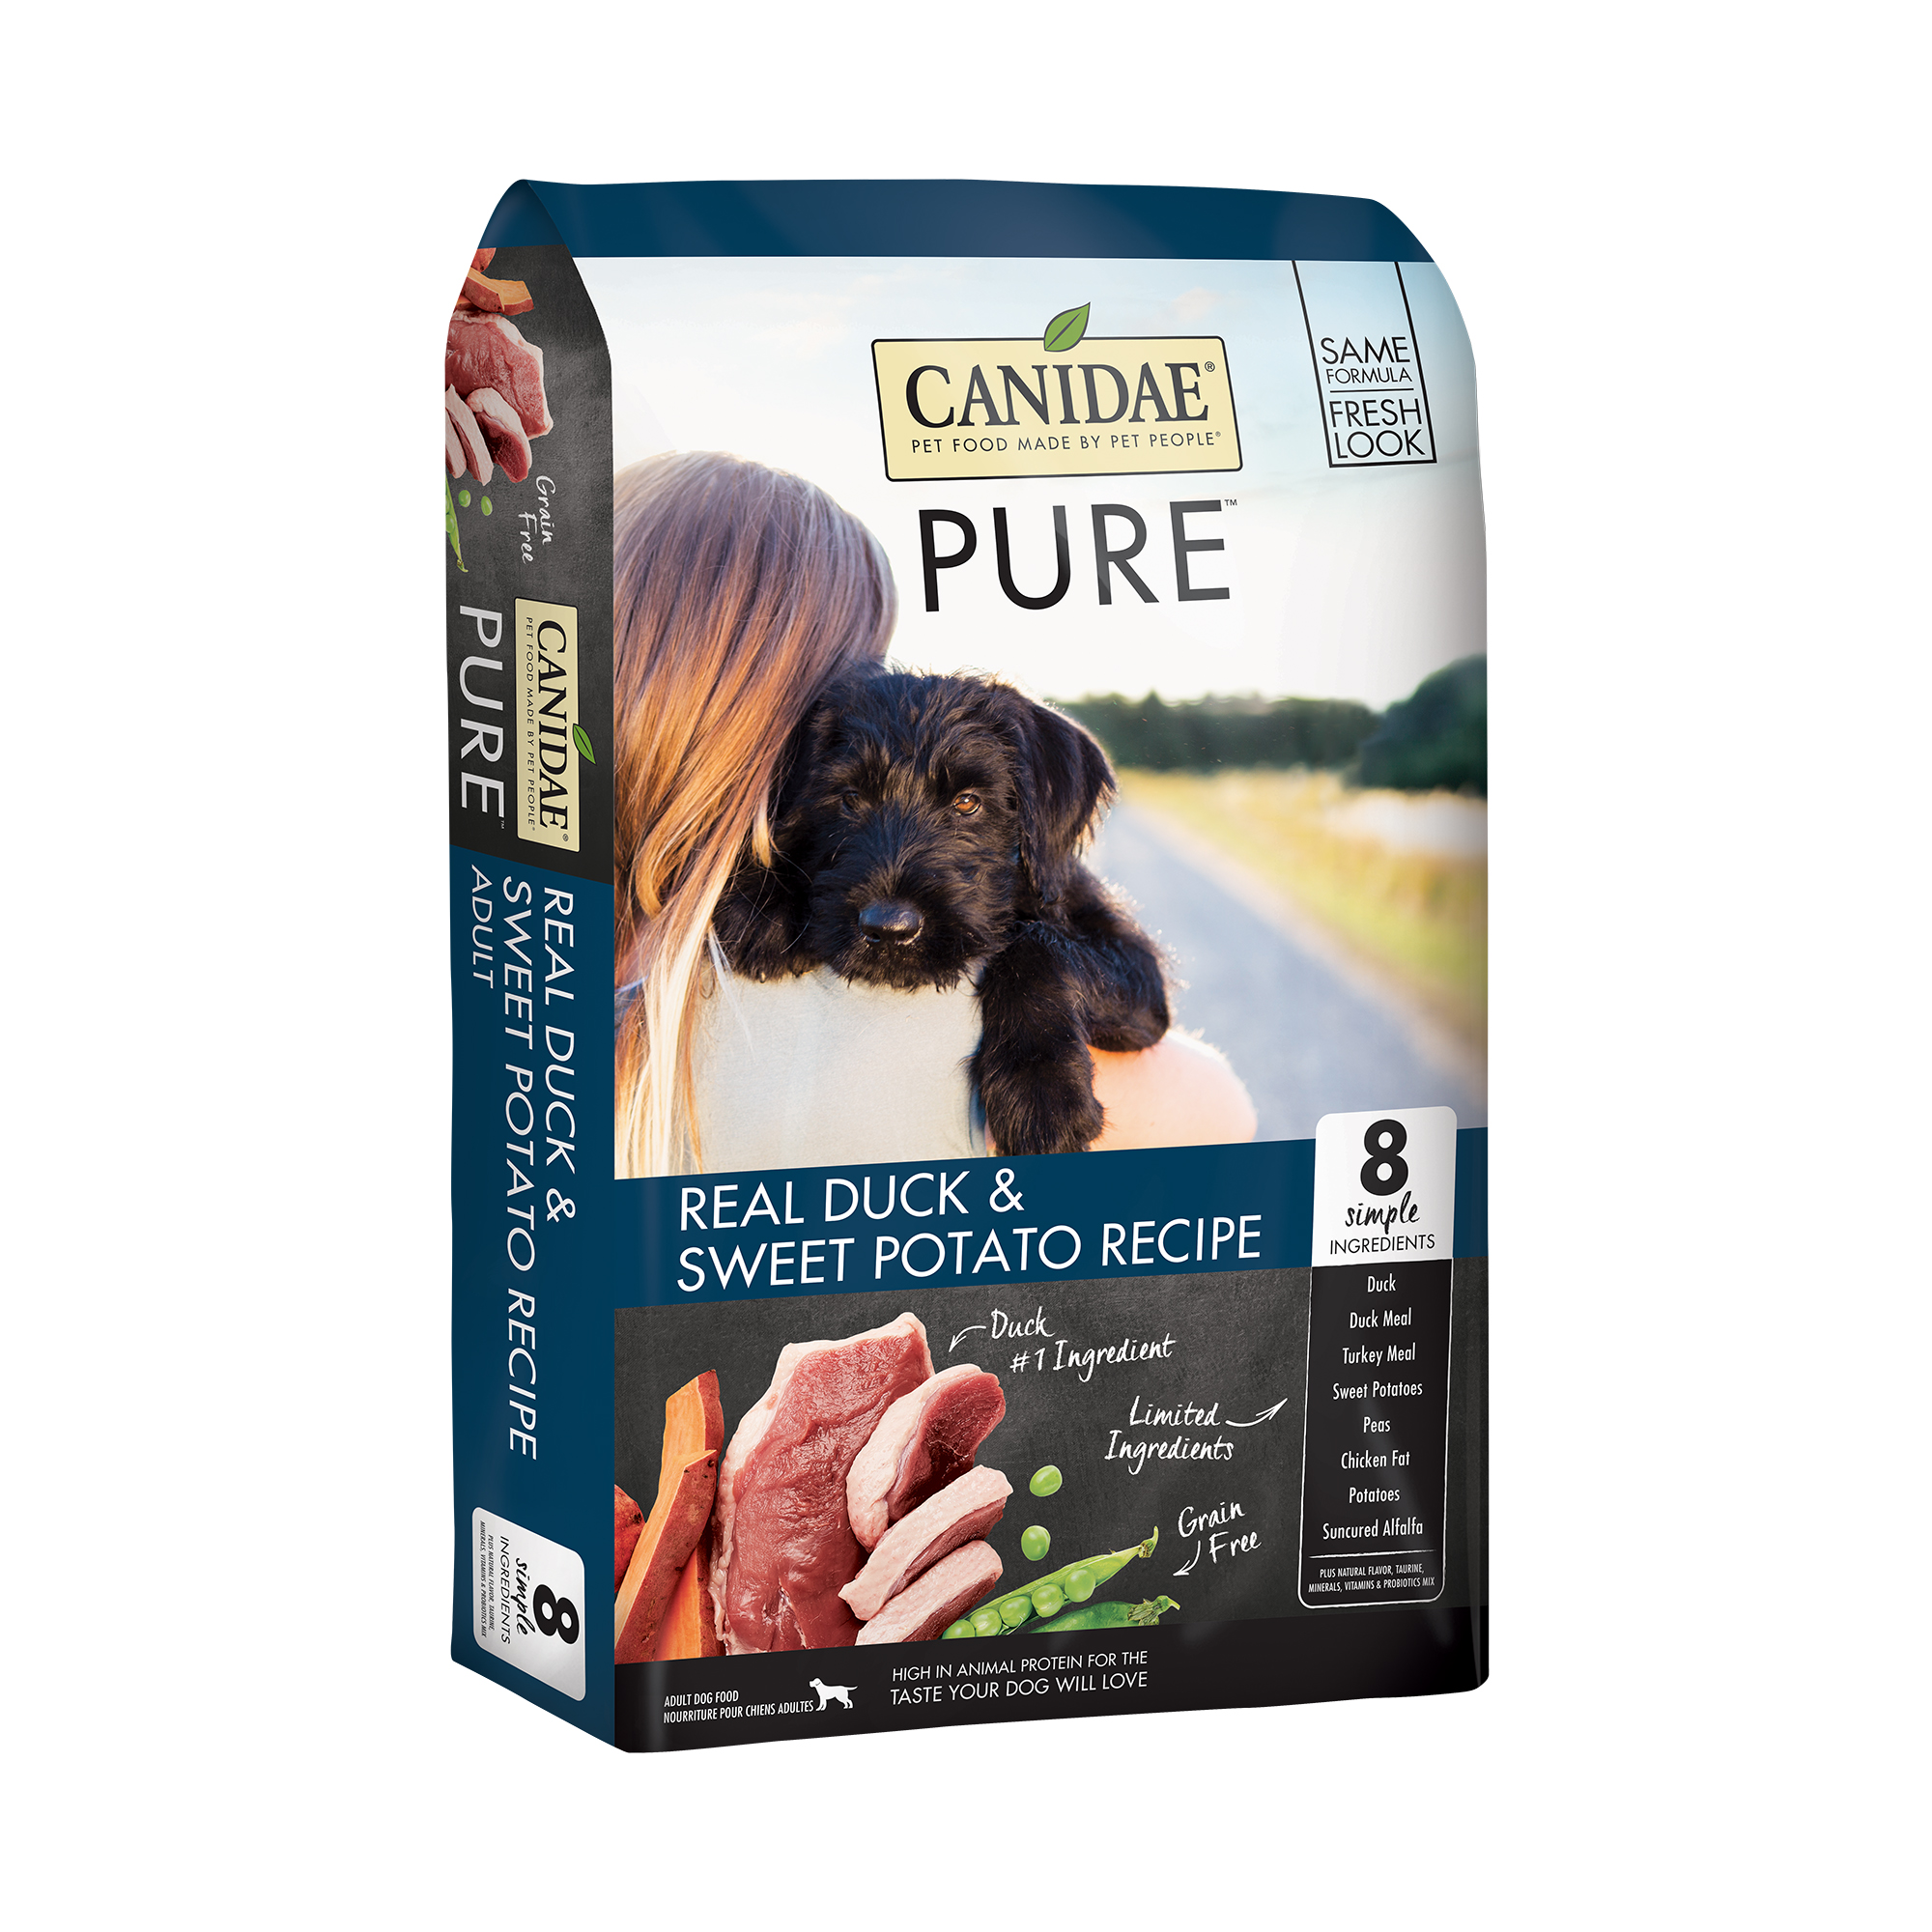 Canidae PURE Grain Free Dry Dog Food with Duck, 24 lbs